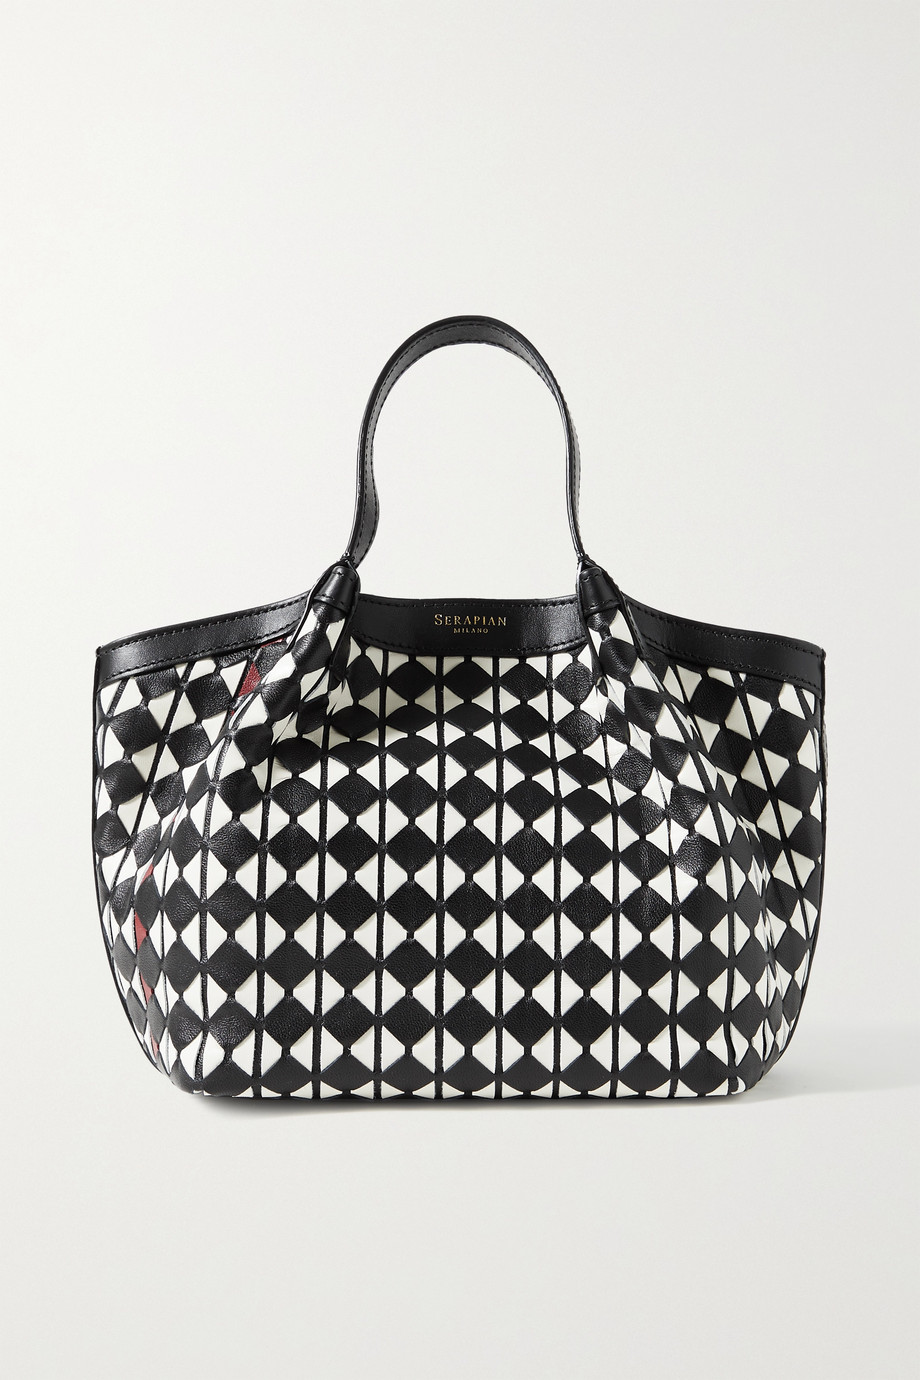 SERAPIAN Secret mini woven leather tote